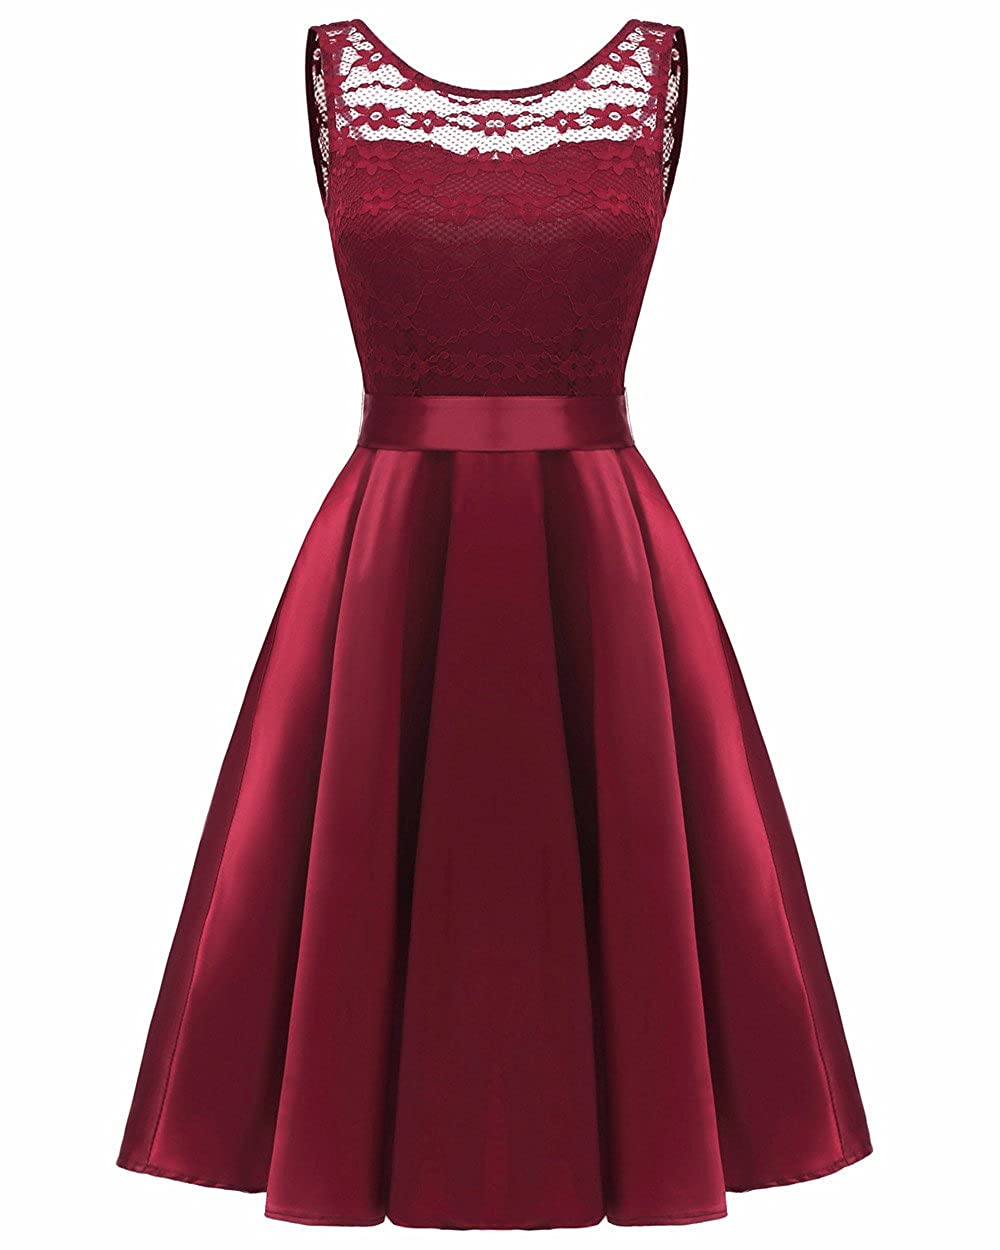 Wine BeNicer Floral Lace Dress for Women Party Wedding Guest A Line Elegant Evening Cocktail Swing Dresses